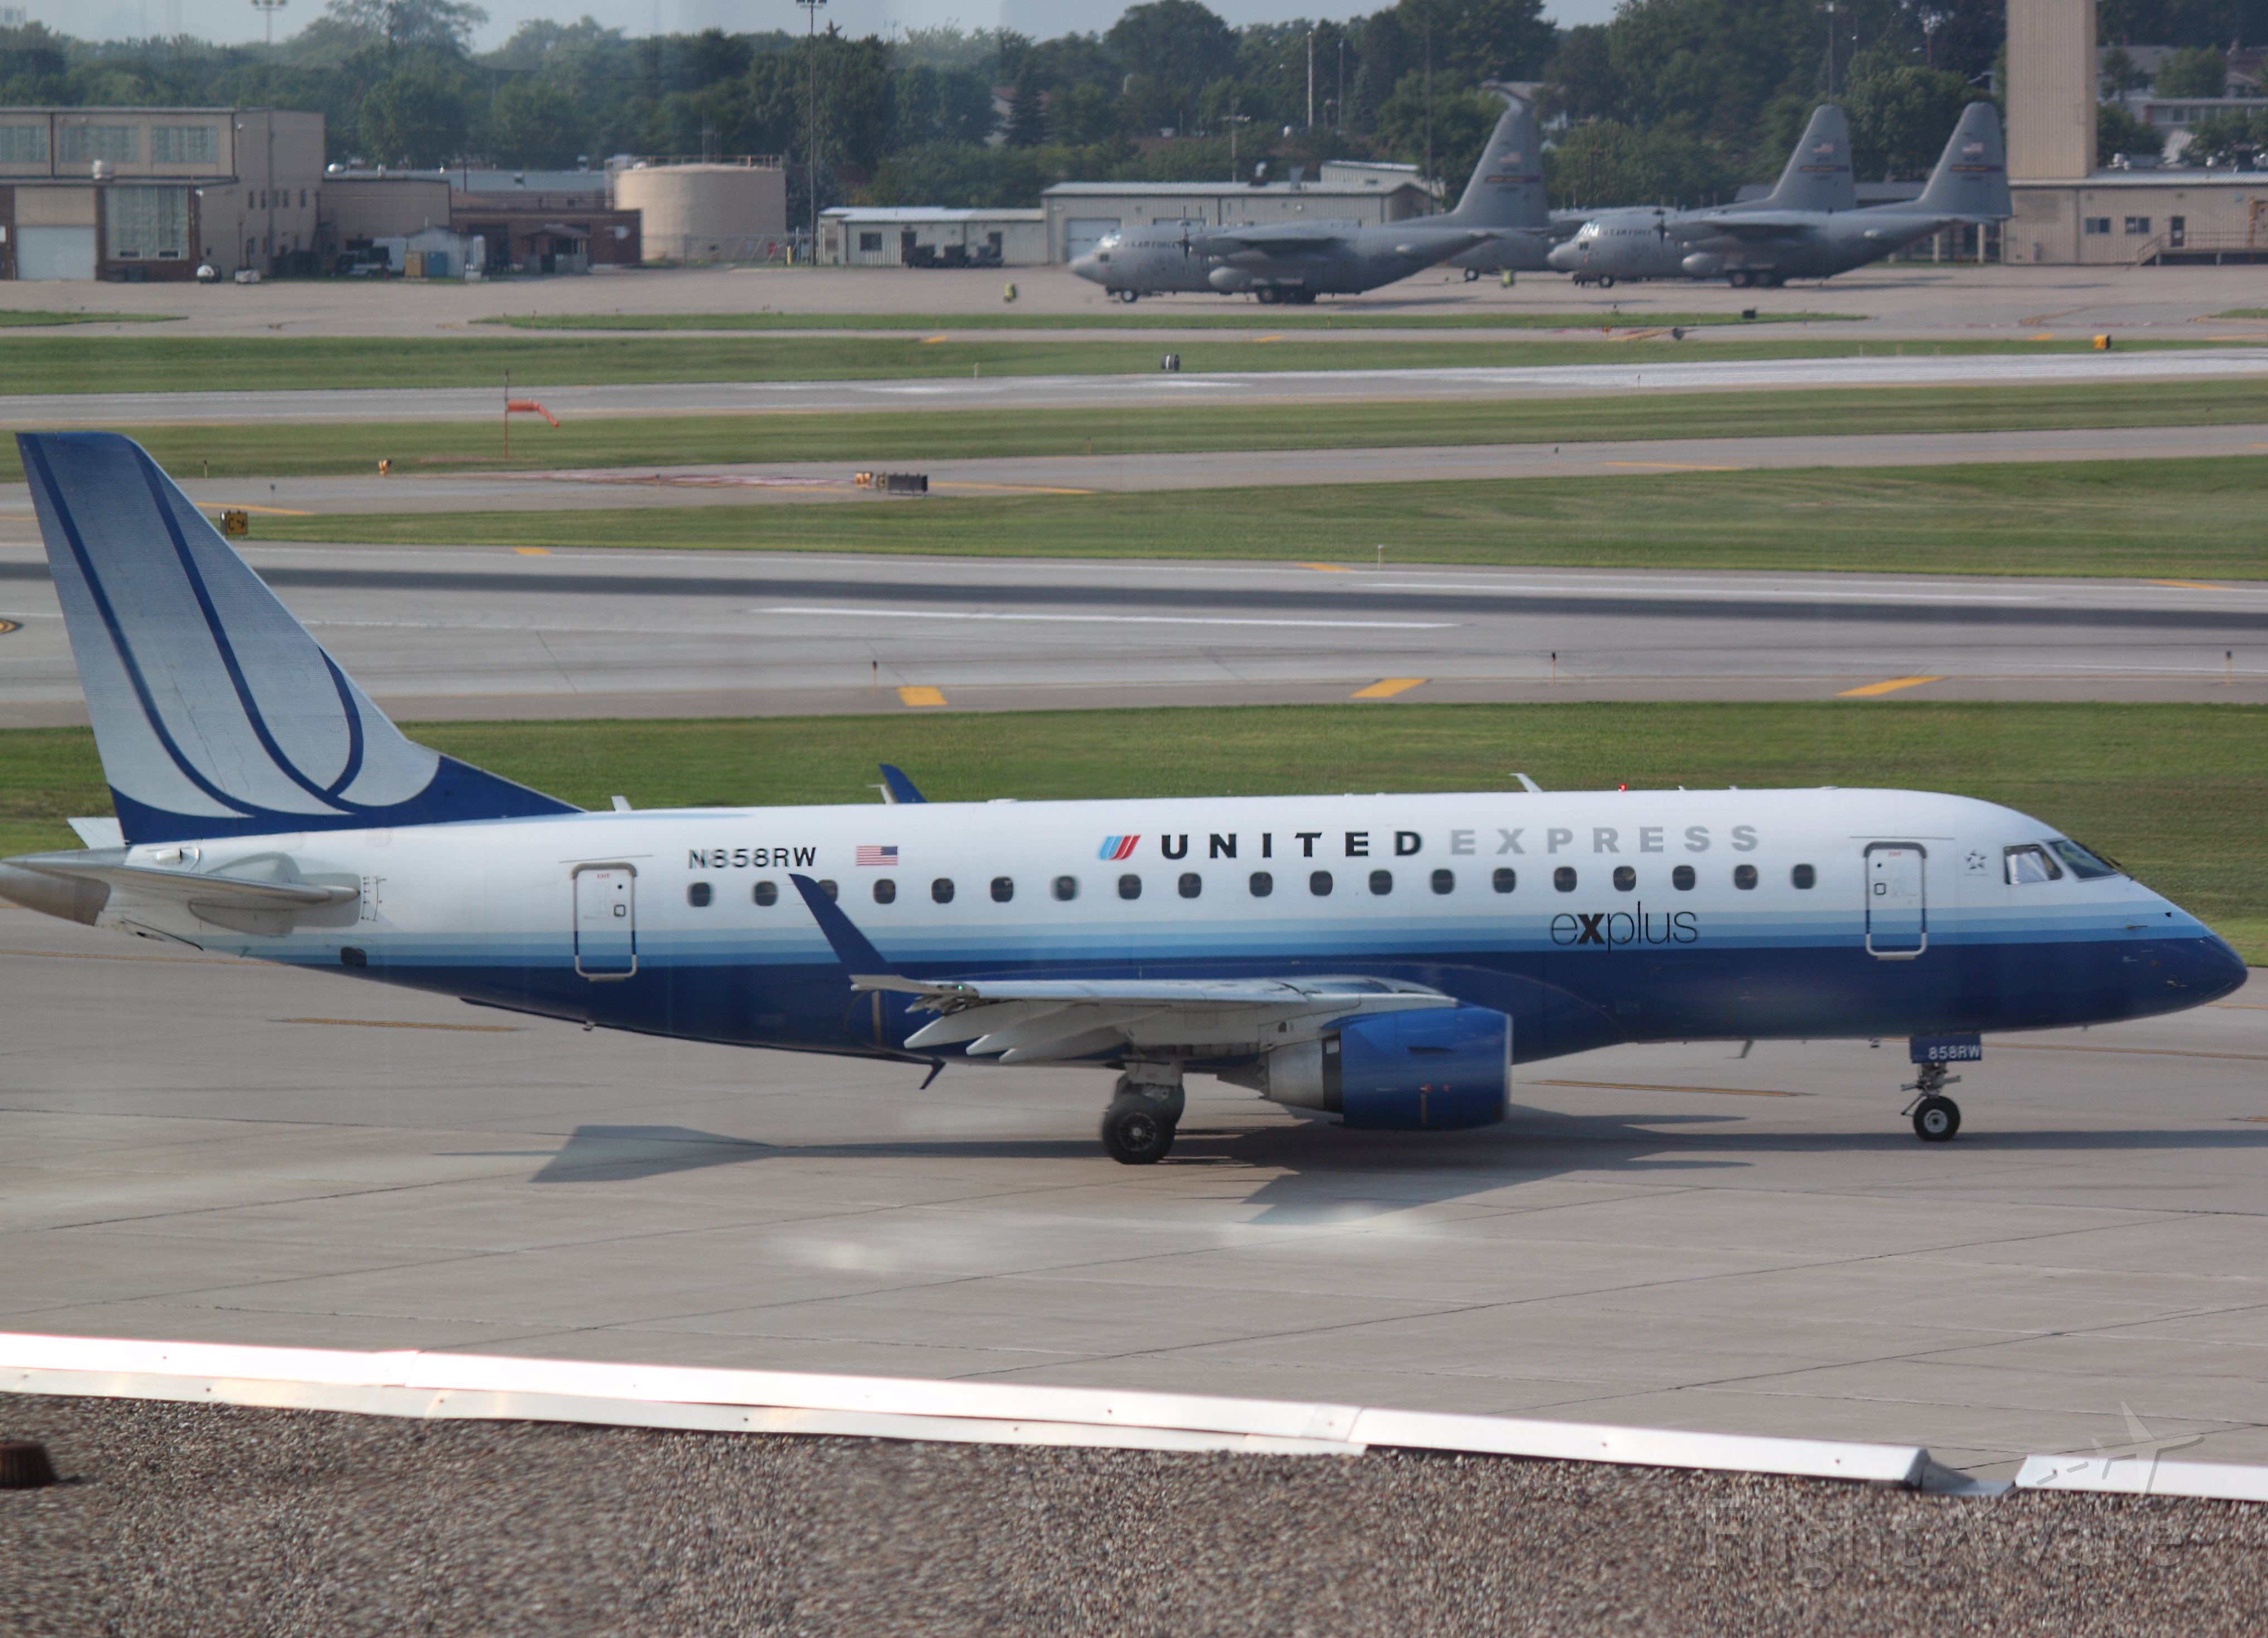 Embraer 170/175 (N858RW) - Taxiing at MSP on 07/31/2011